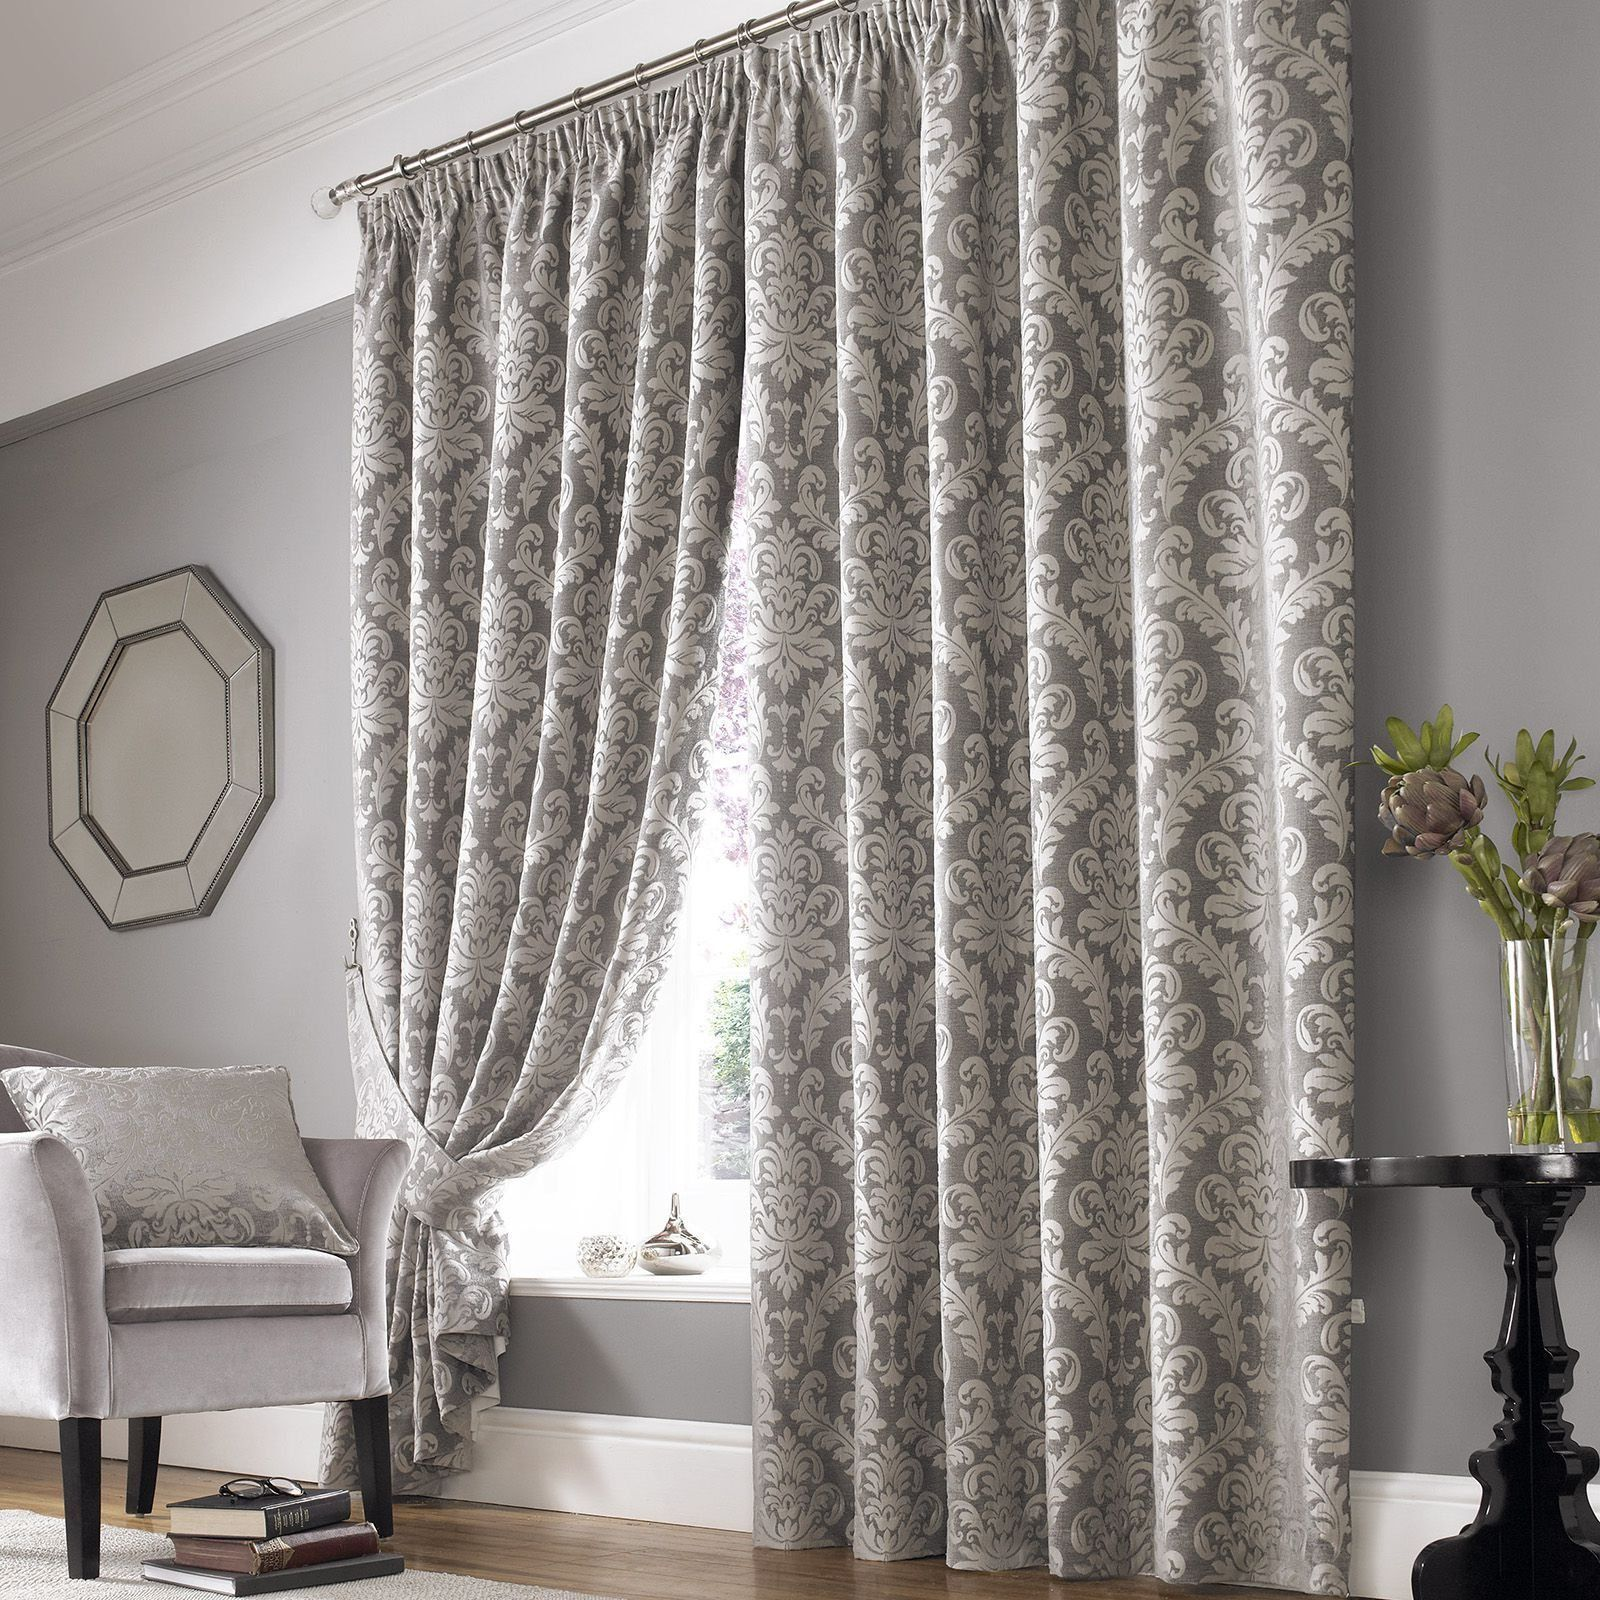 Grey Damask Curtains Hung In For The Window And Grey Walls